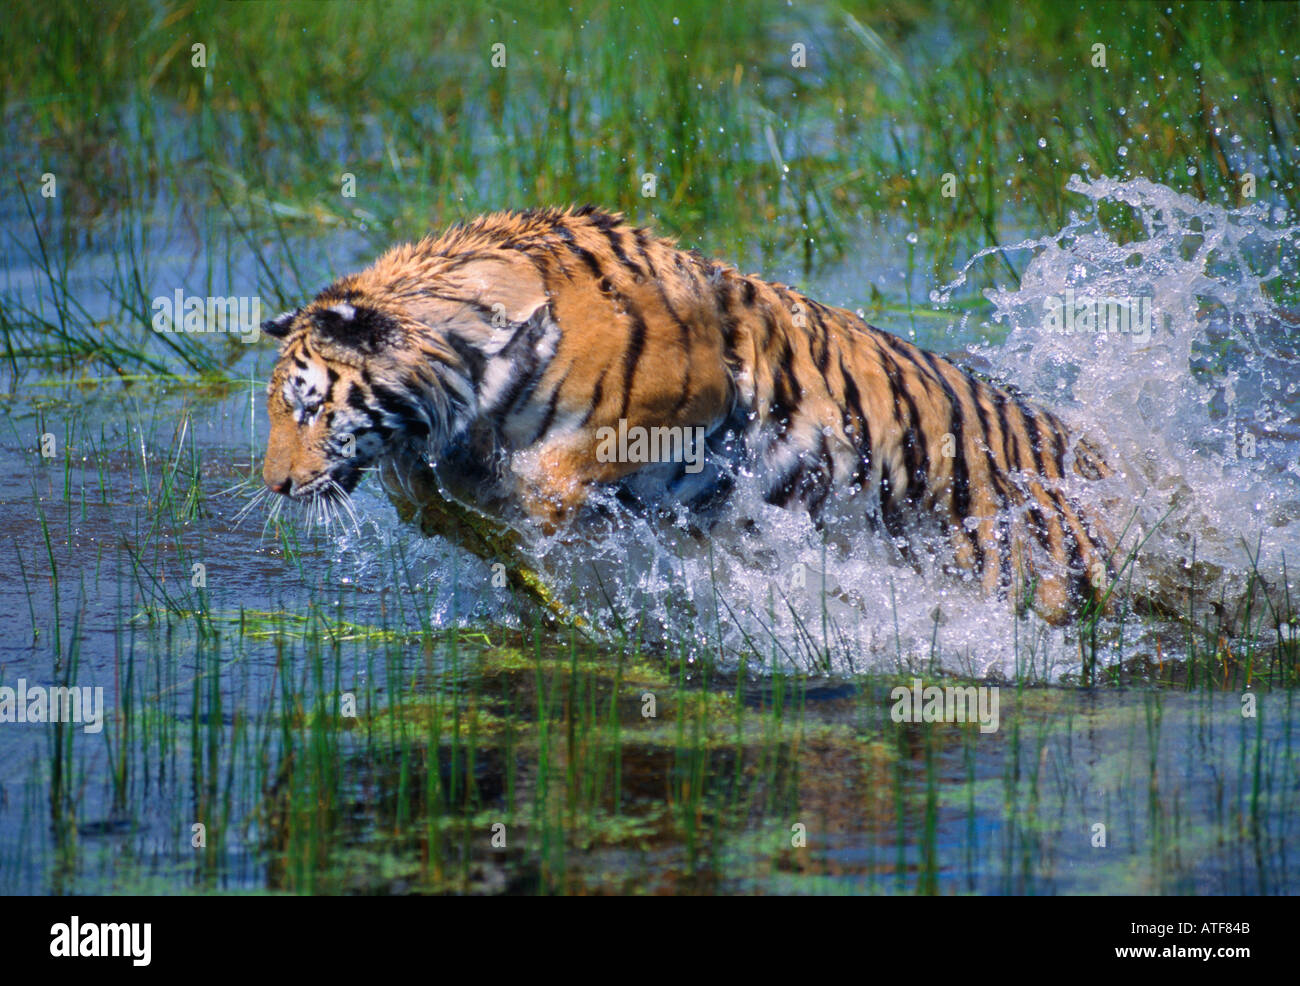 bengal tiger running through the water wildlife model stock photo